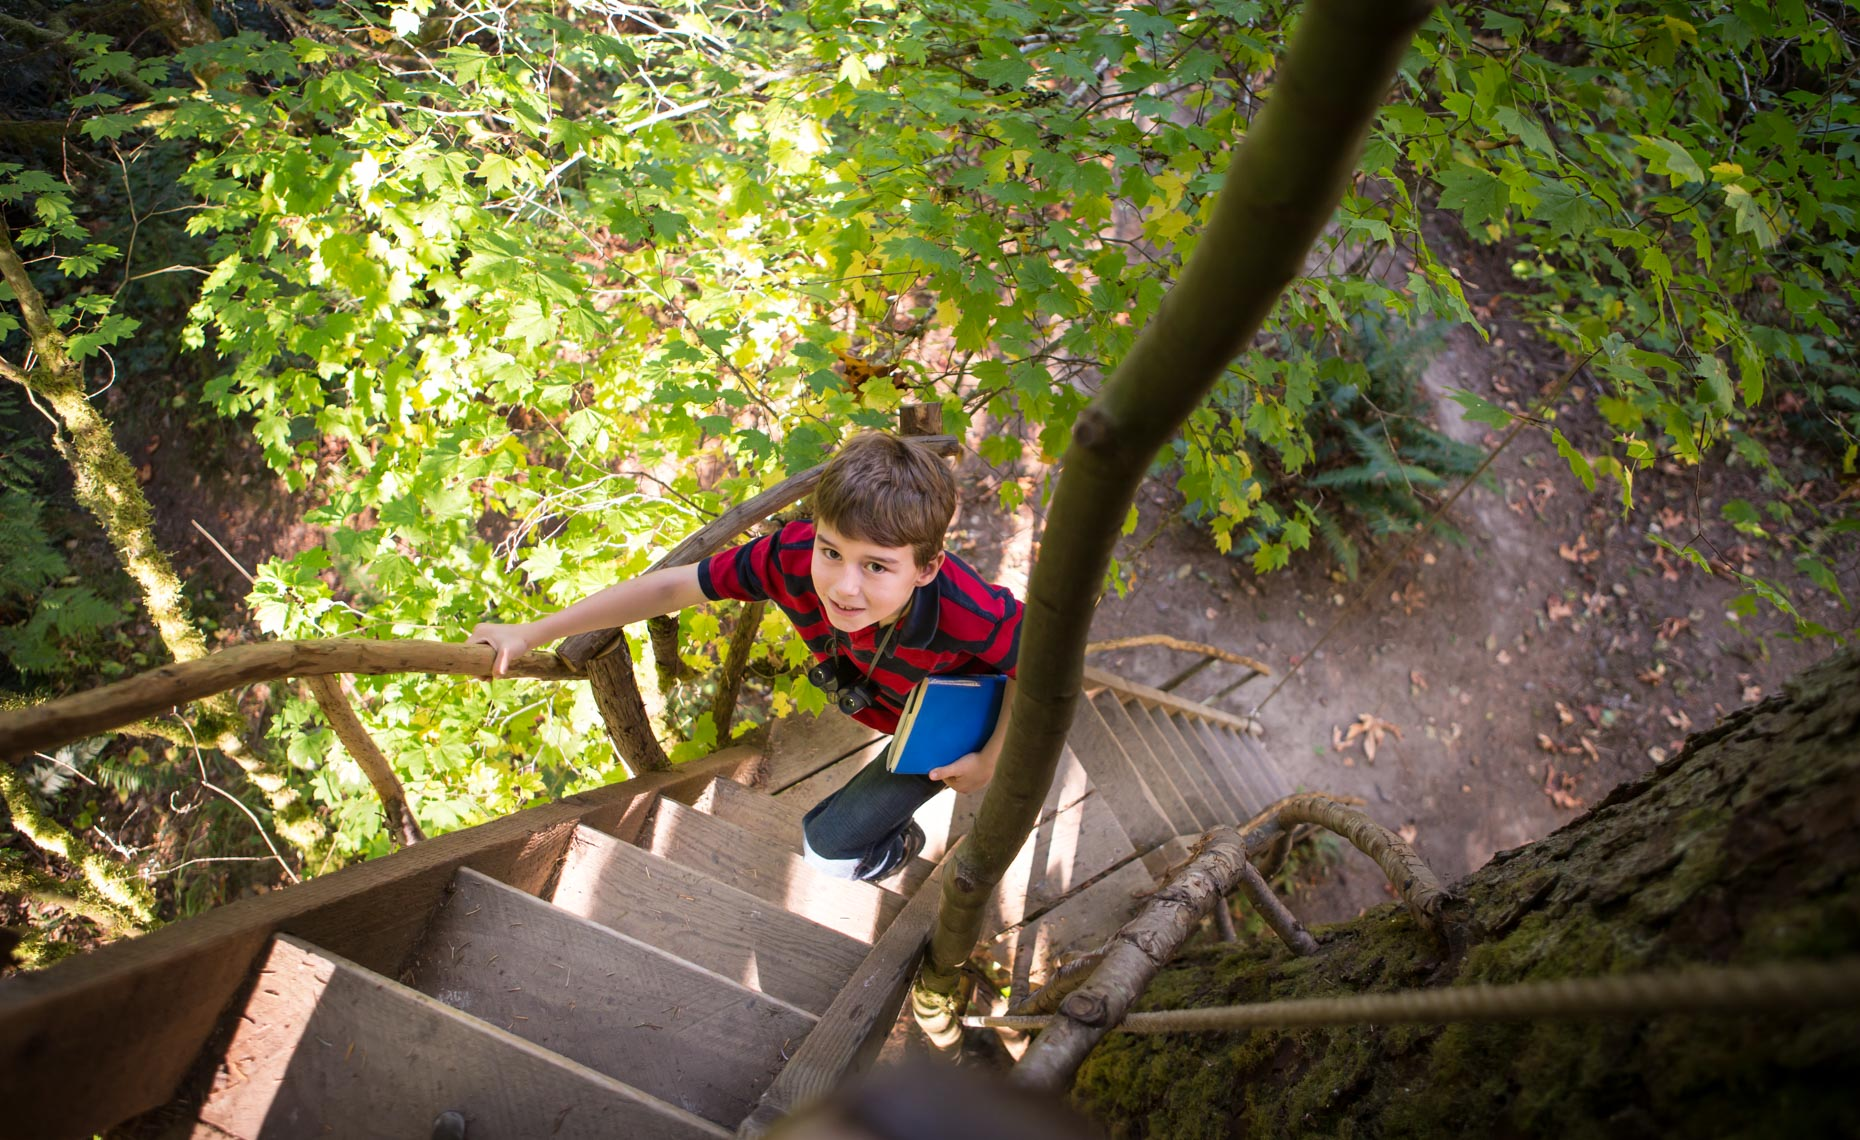 A young boy (8-12 years old) climbs the ladder of a treehouse at Treehouse Point, Preston WA, USA.